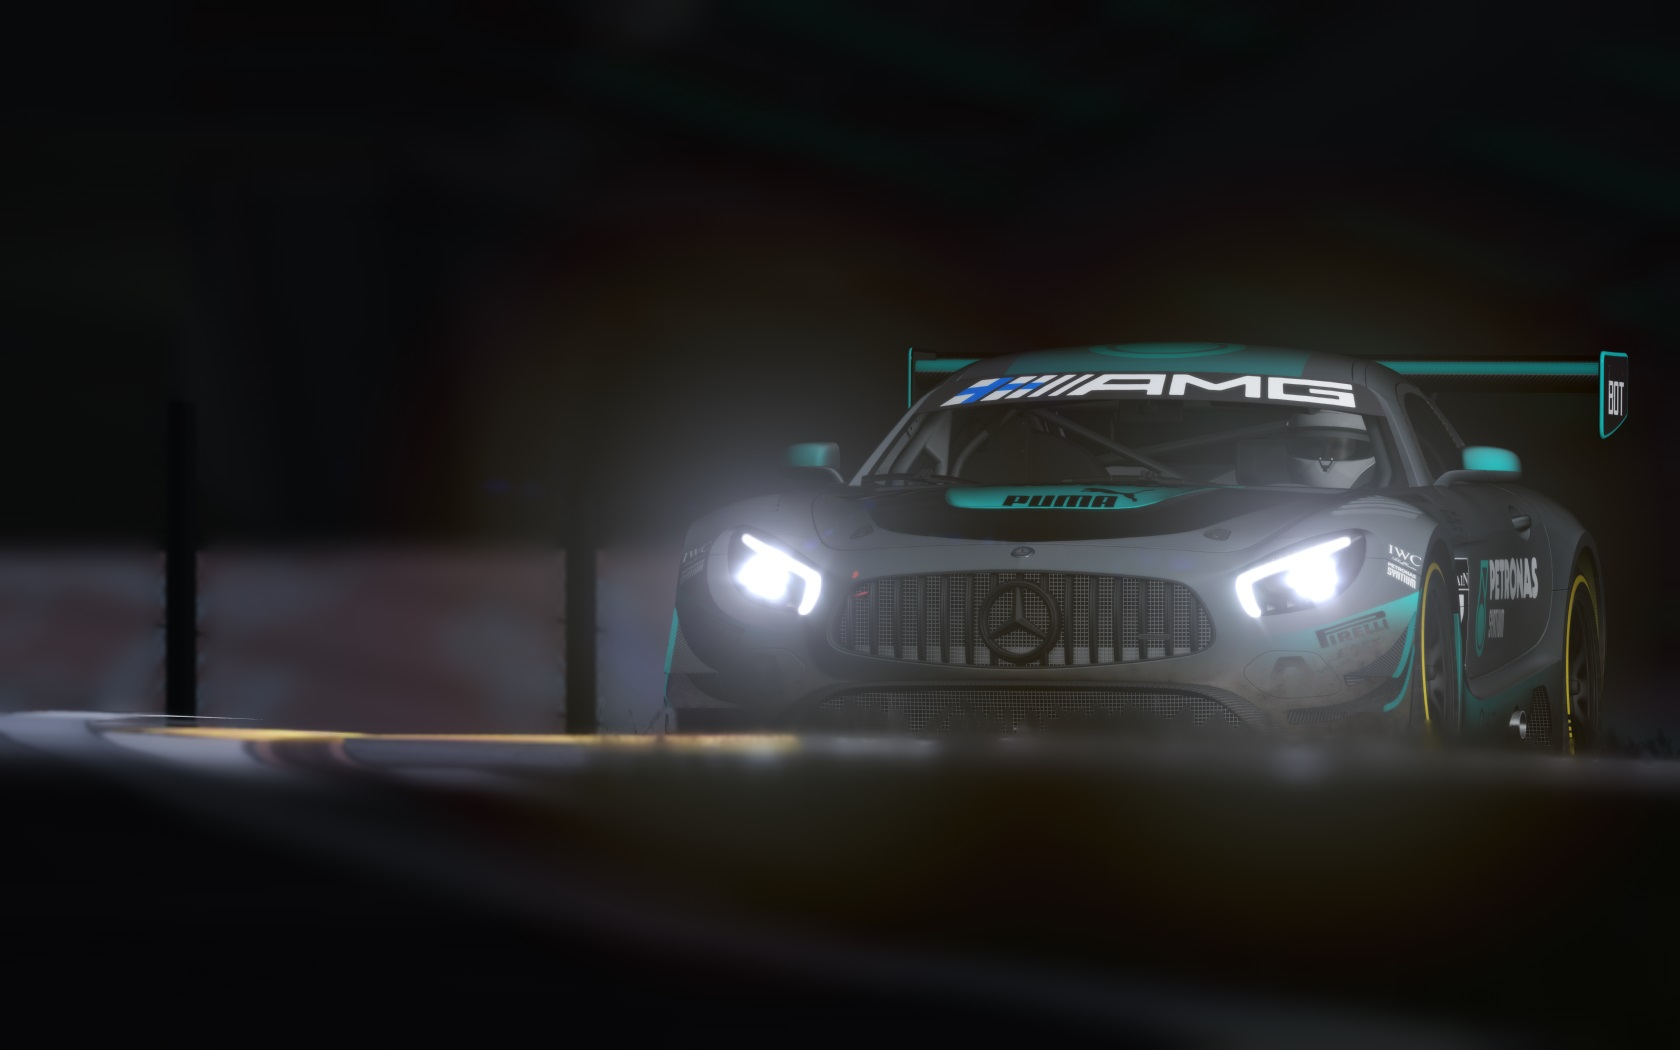 Screenshot_ks_mercedes_amg_gt3_spa_24-11-118-15-48-44.jpg